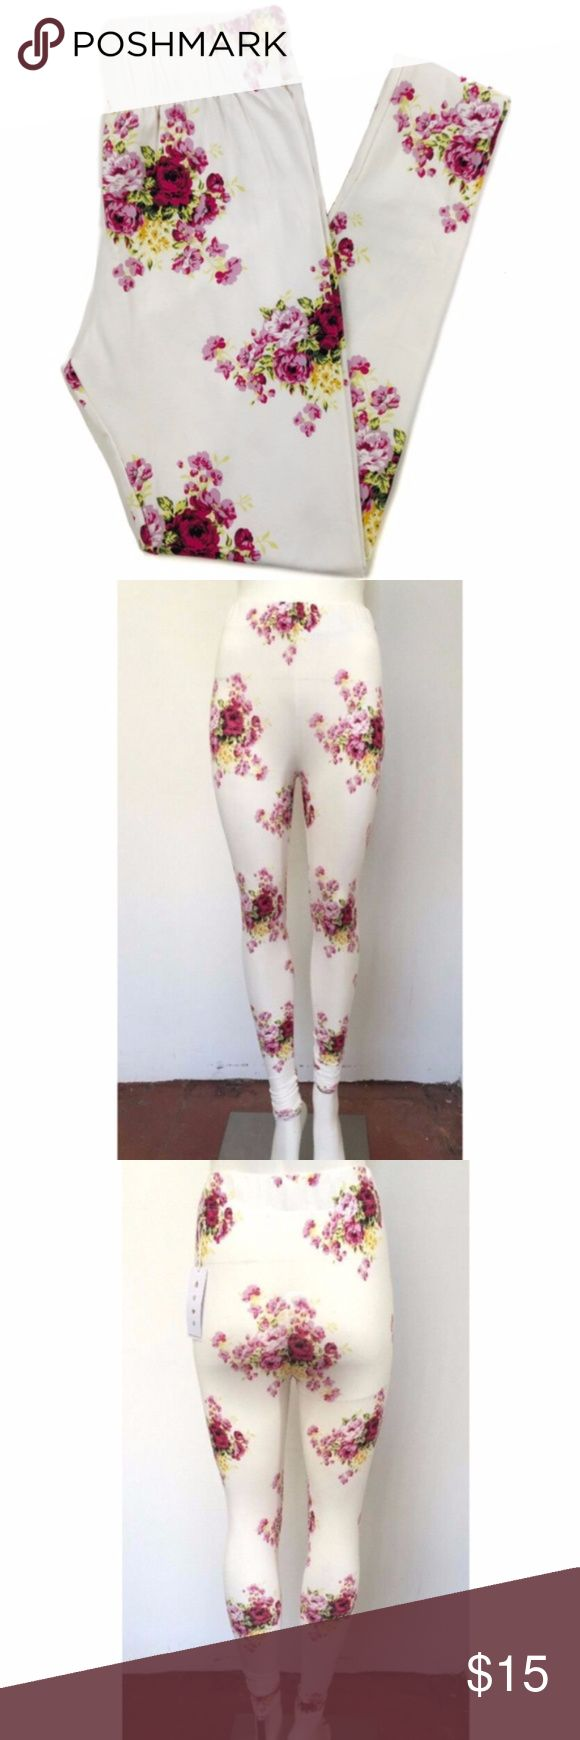 Spiritual Gangster White Floral Leggings NWT Spiritual Gangster White Floral Leggings  White/Pink/Yellow  Includes 3 Size Small Leggings  94% Cotton & 6% Lycra  Size Large New with tags Spiritual Gangster Pants Leggings